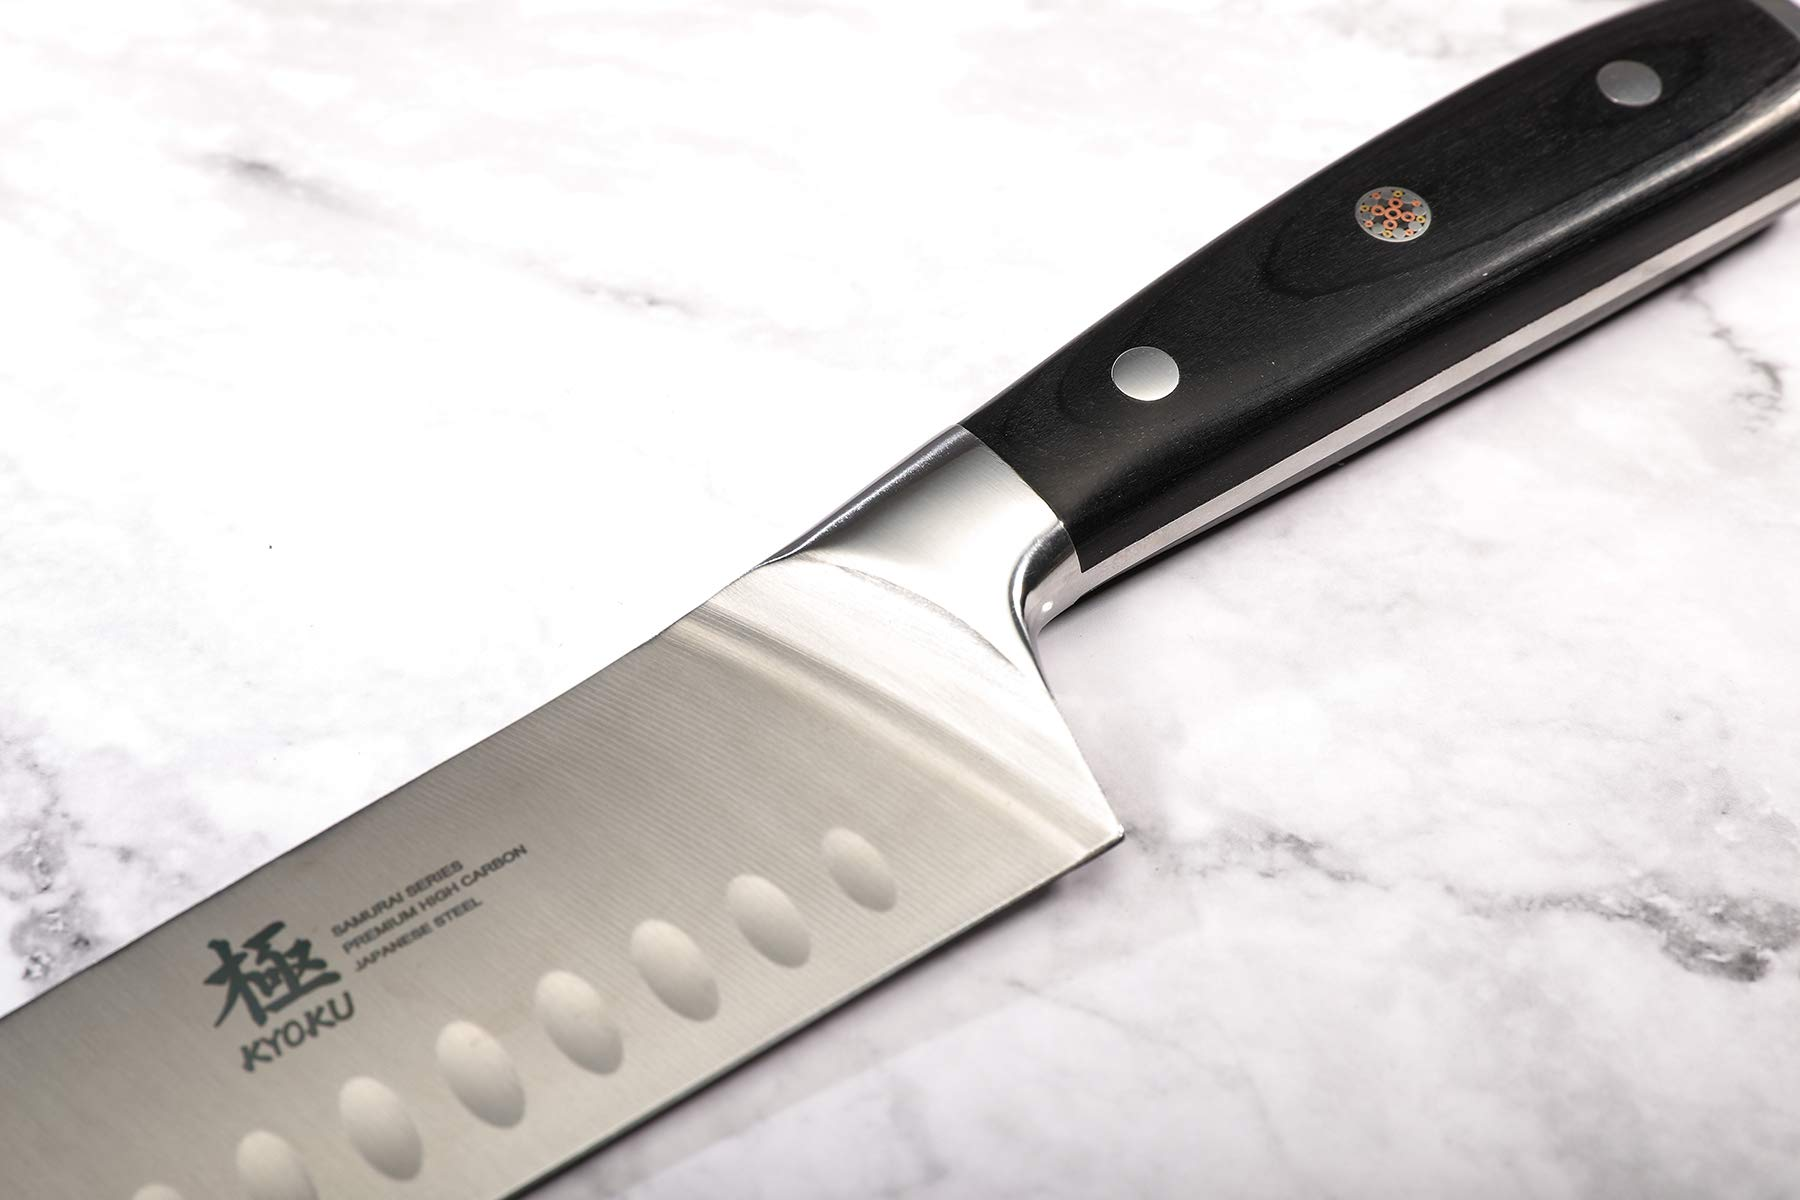 KYOKU Samurai Series - Santoku Chef Knife 7'' with Sheath & Case - Full Tang - Japanese High Carbon Steel - Pakkawood Handle with Mosaic Pin by KYOKU (Image #5)